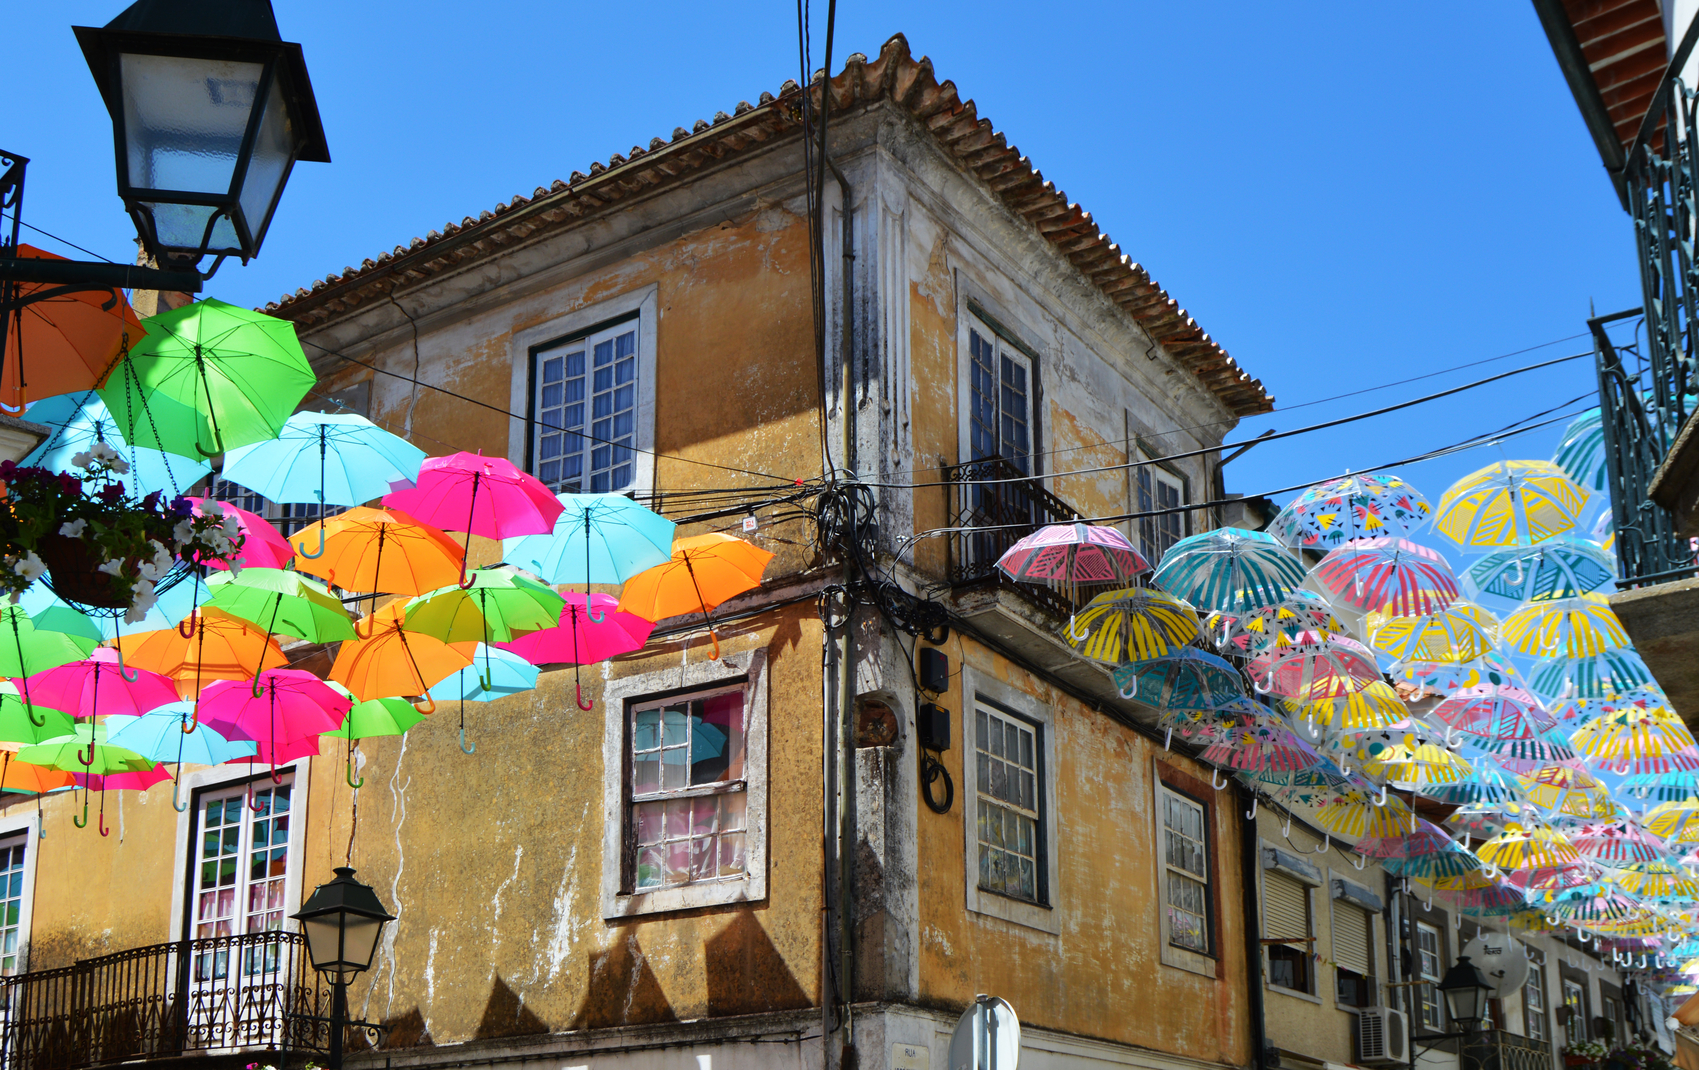 Umbrella Sky Project - Águeda'17